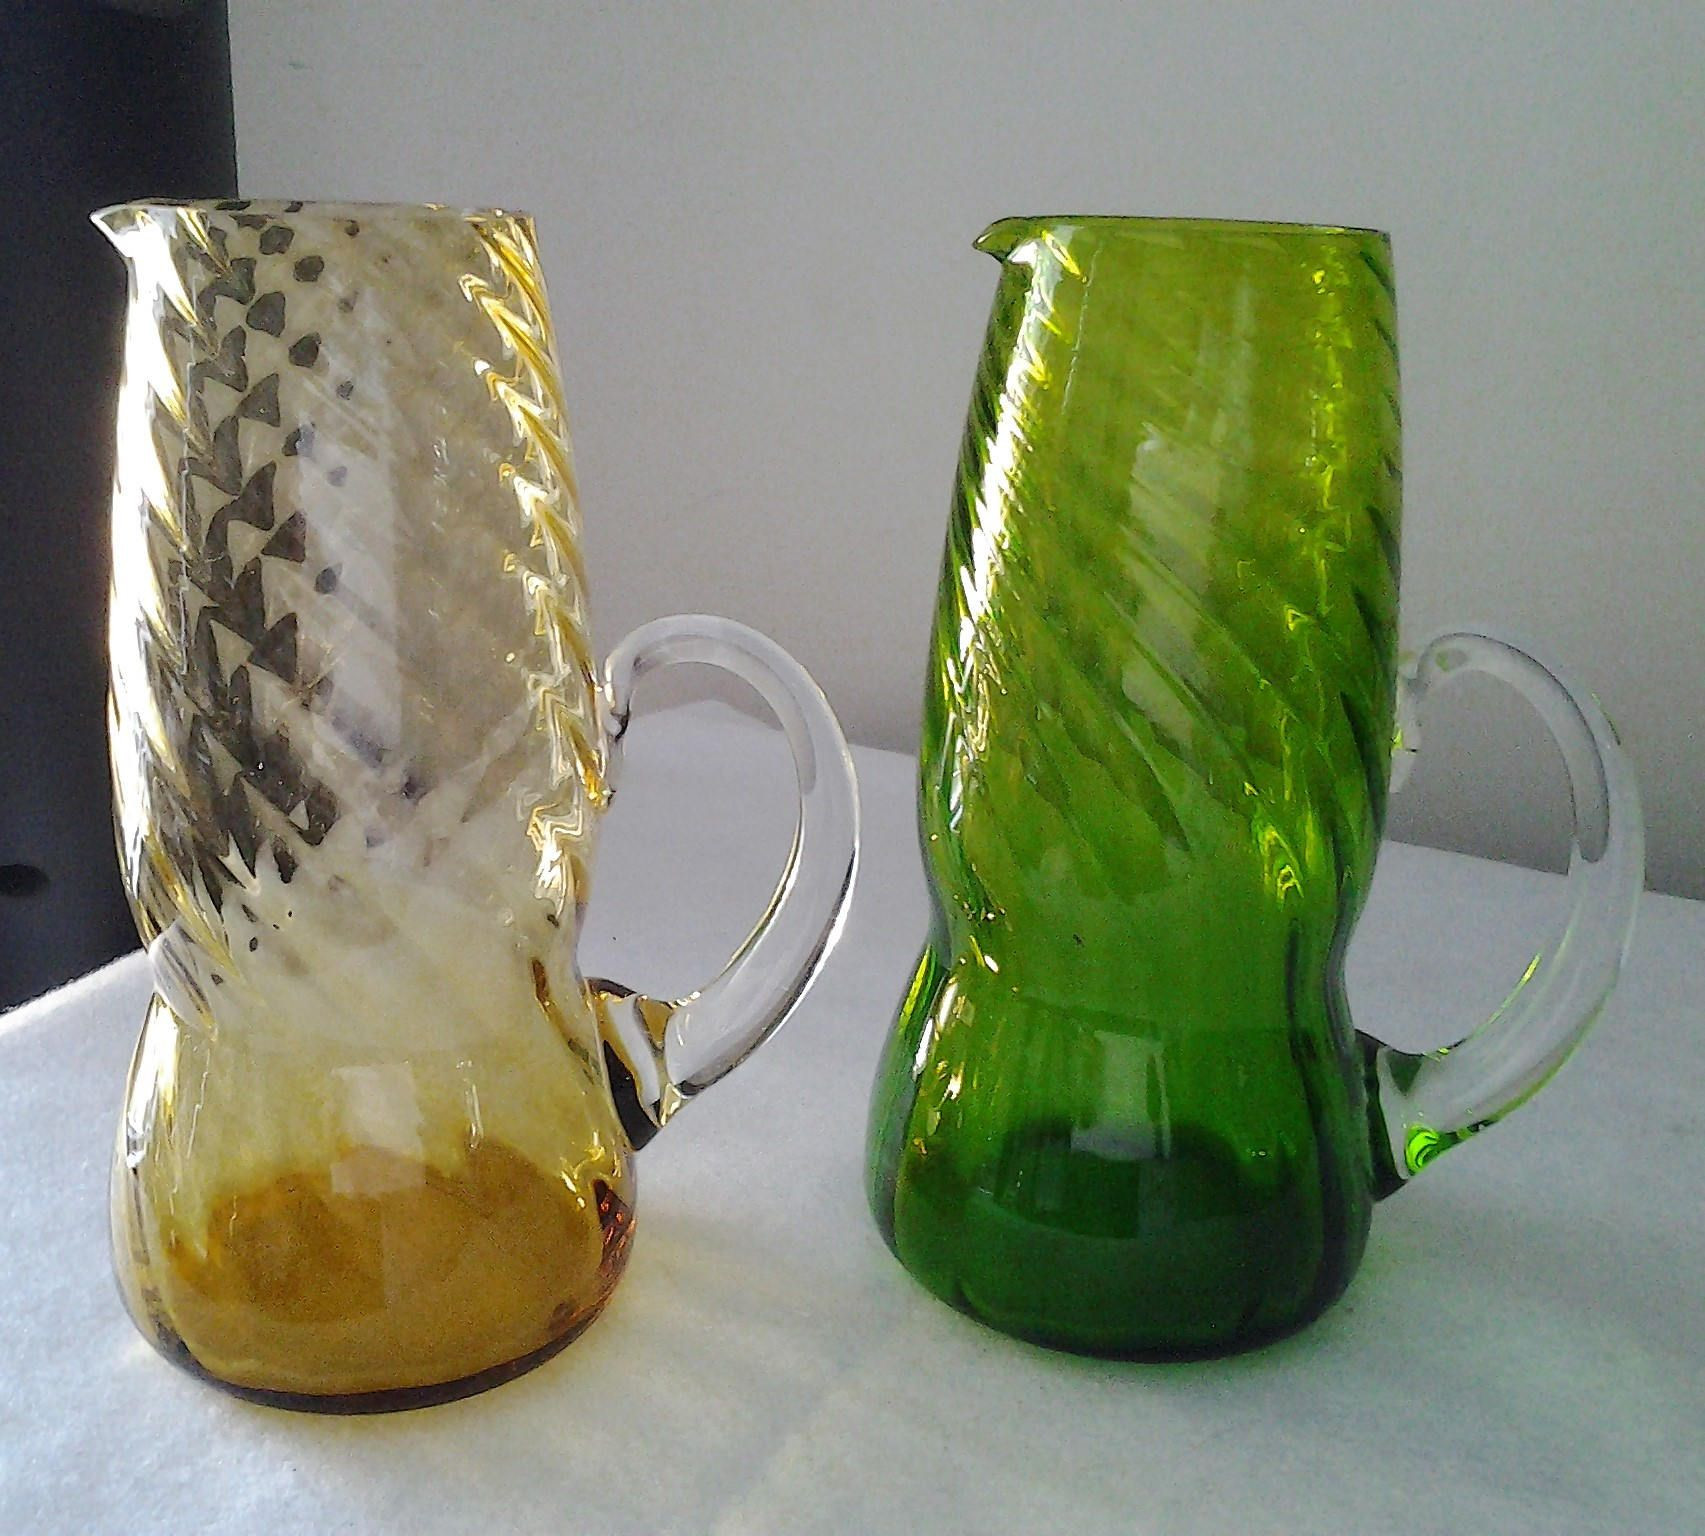 30 Lovable Amber Bubble Glass Vase 2021 free download amber bubble glass vase of retro amber green glass ewer vases twisted glass with clear within retro amber green glass ewer vases twisted glass with clear handle christmas colours